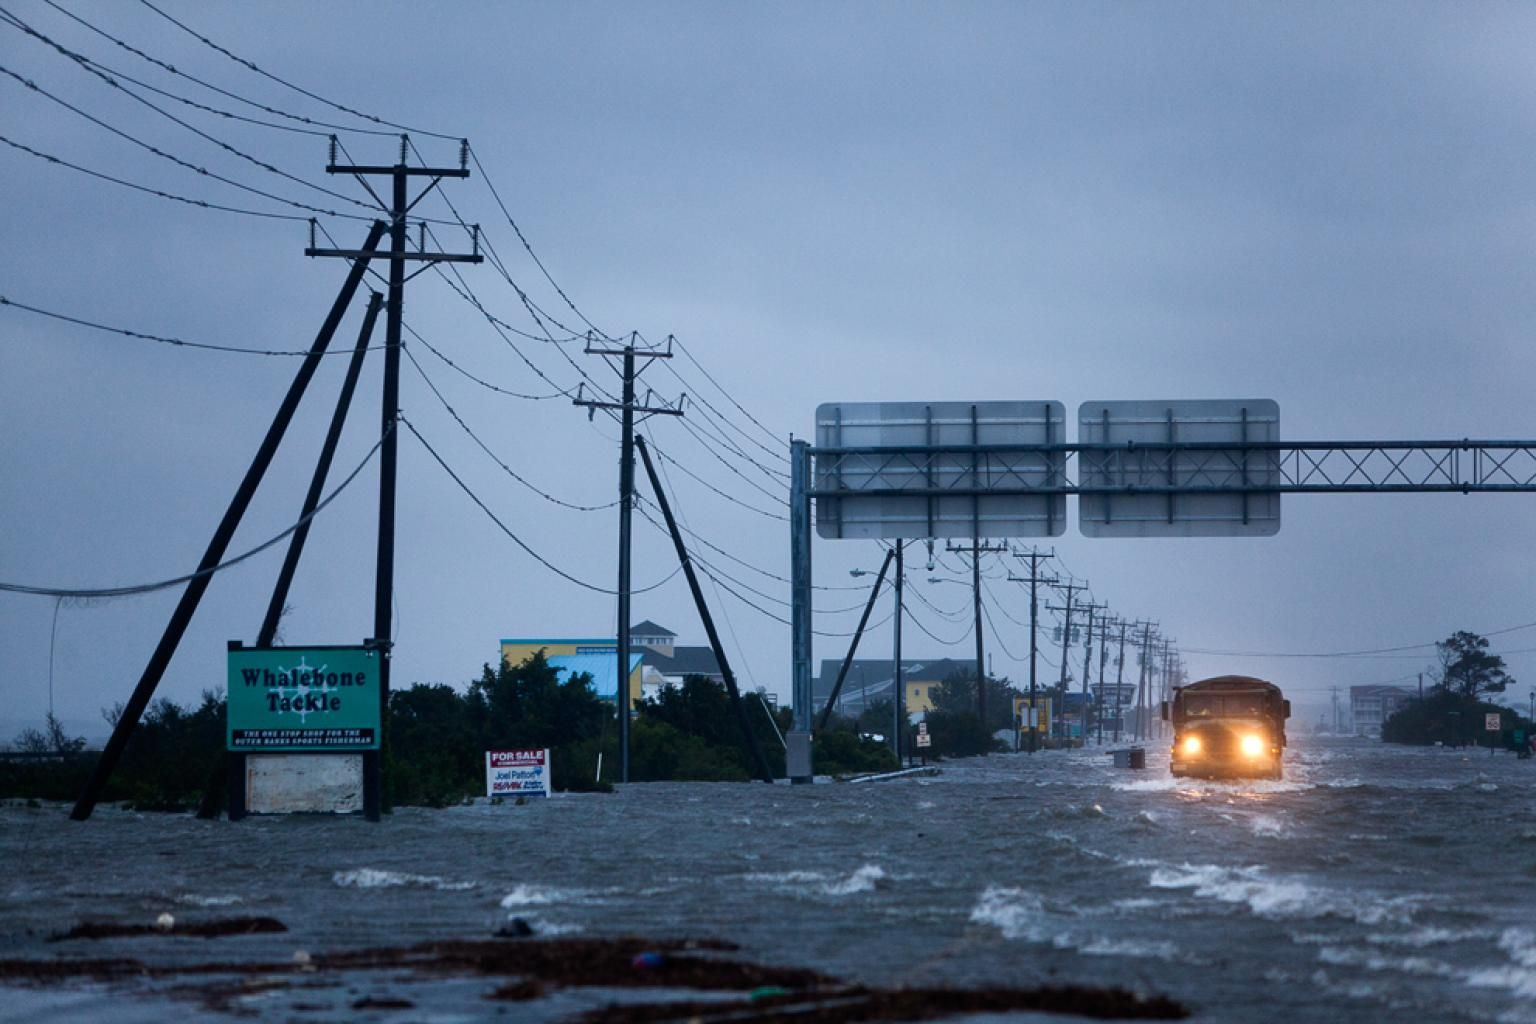 Hurricane Irene Pictures Flooding Damage In New York Beyond Albemarle Sound Severe Storms North Carolina